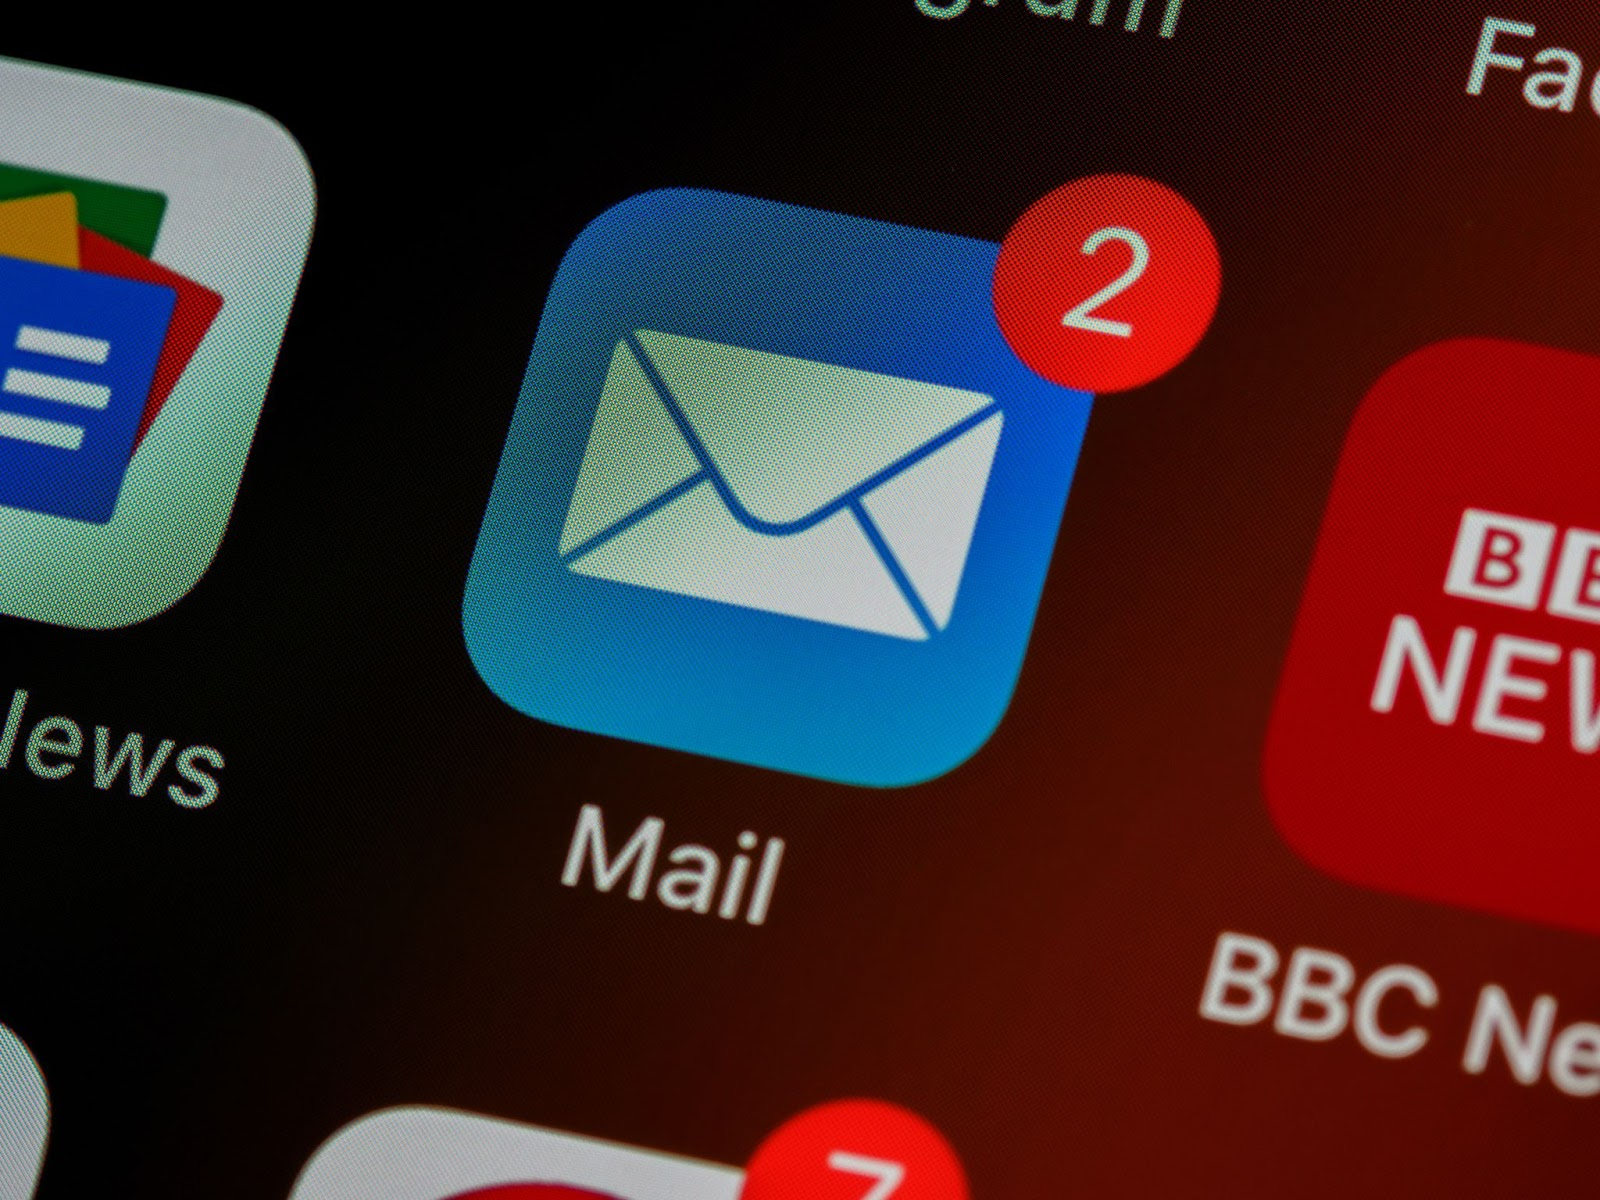 Keep your emails as short as possible, in the simplest language possible.